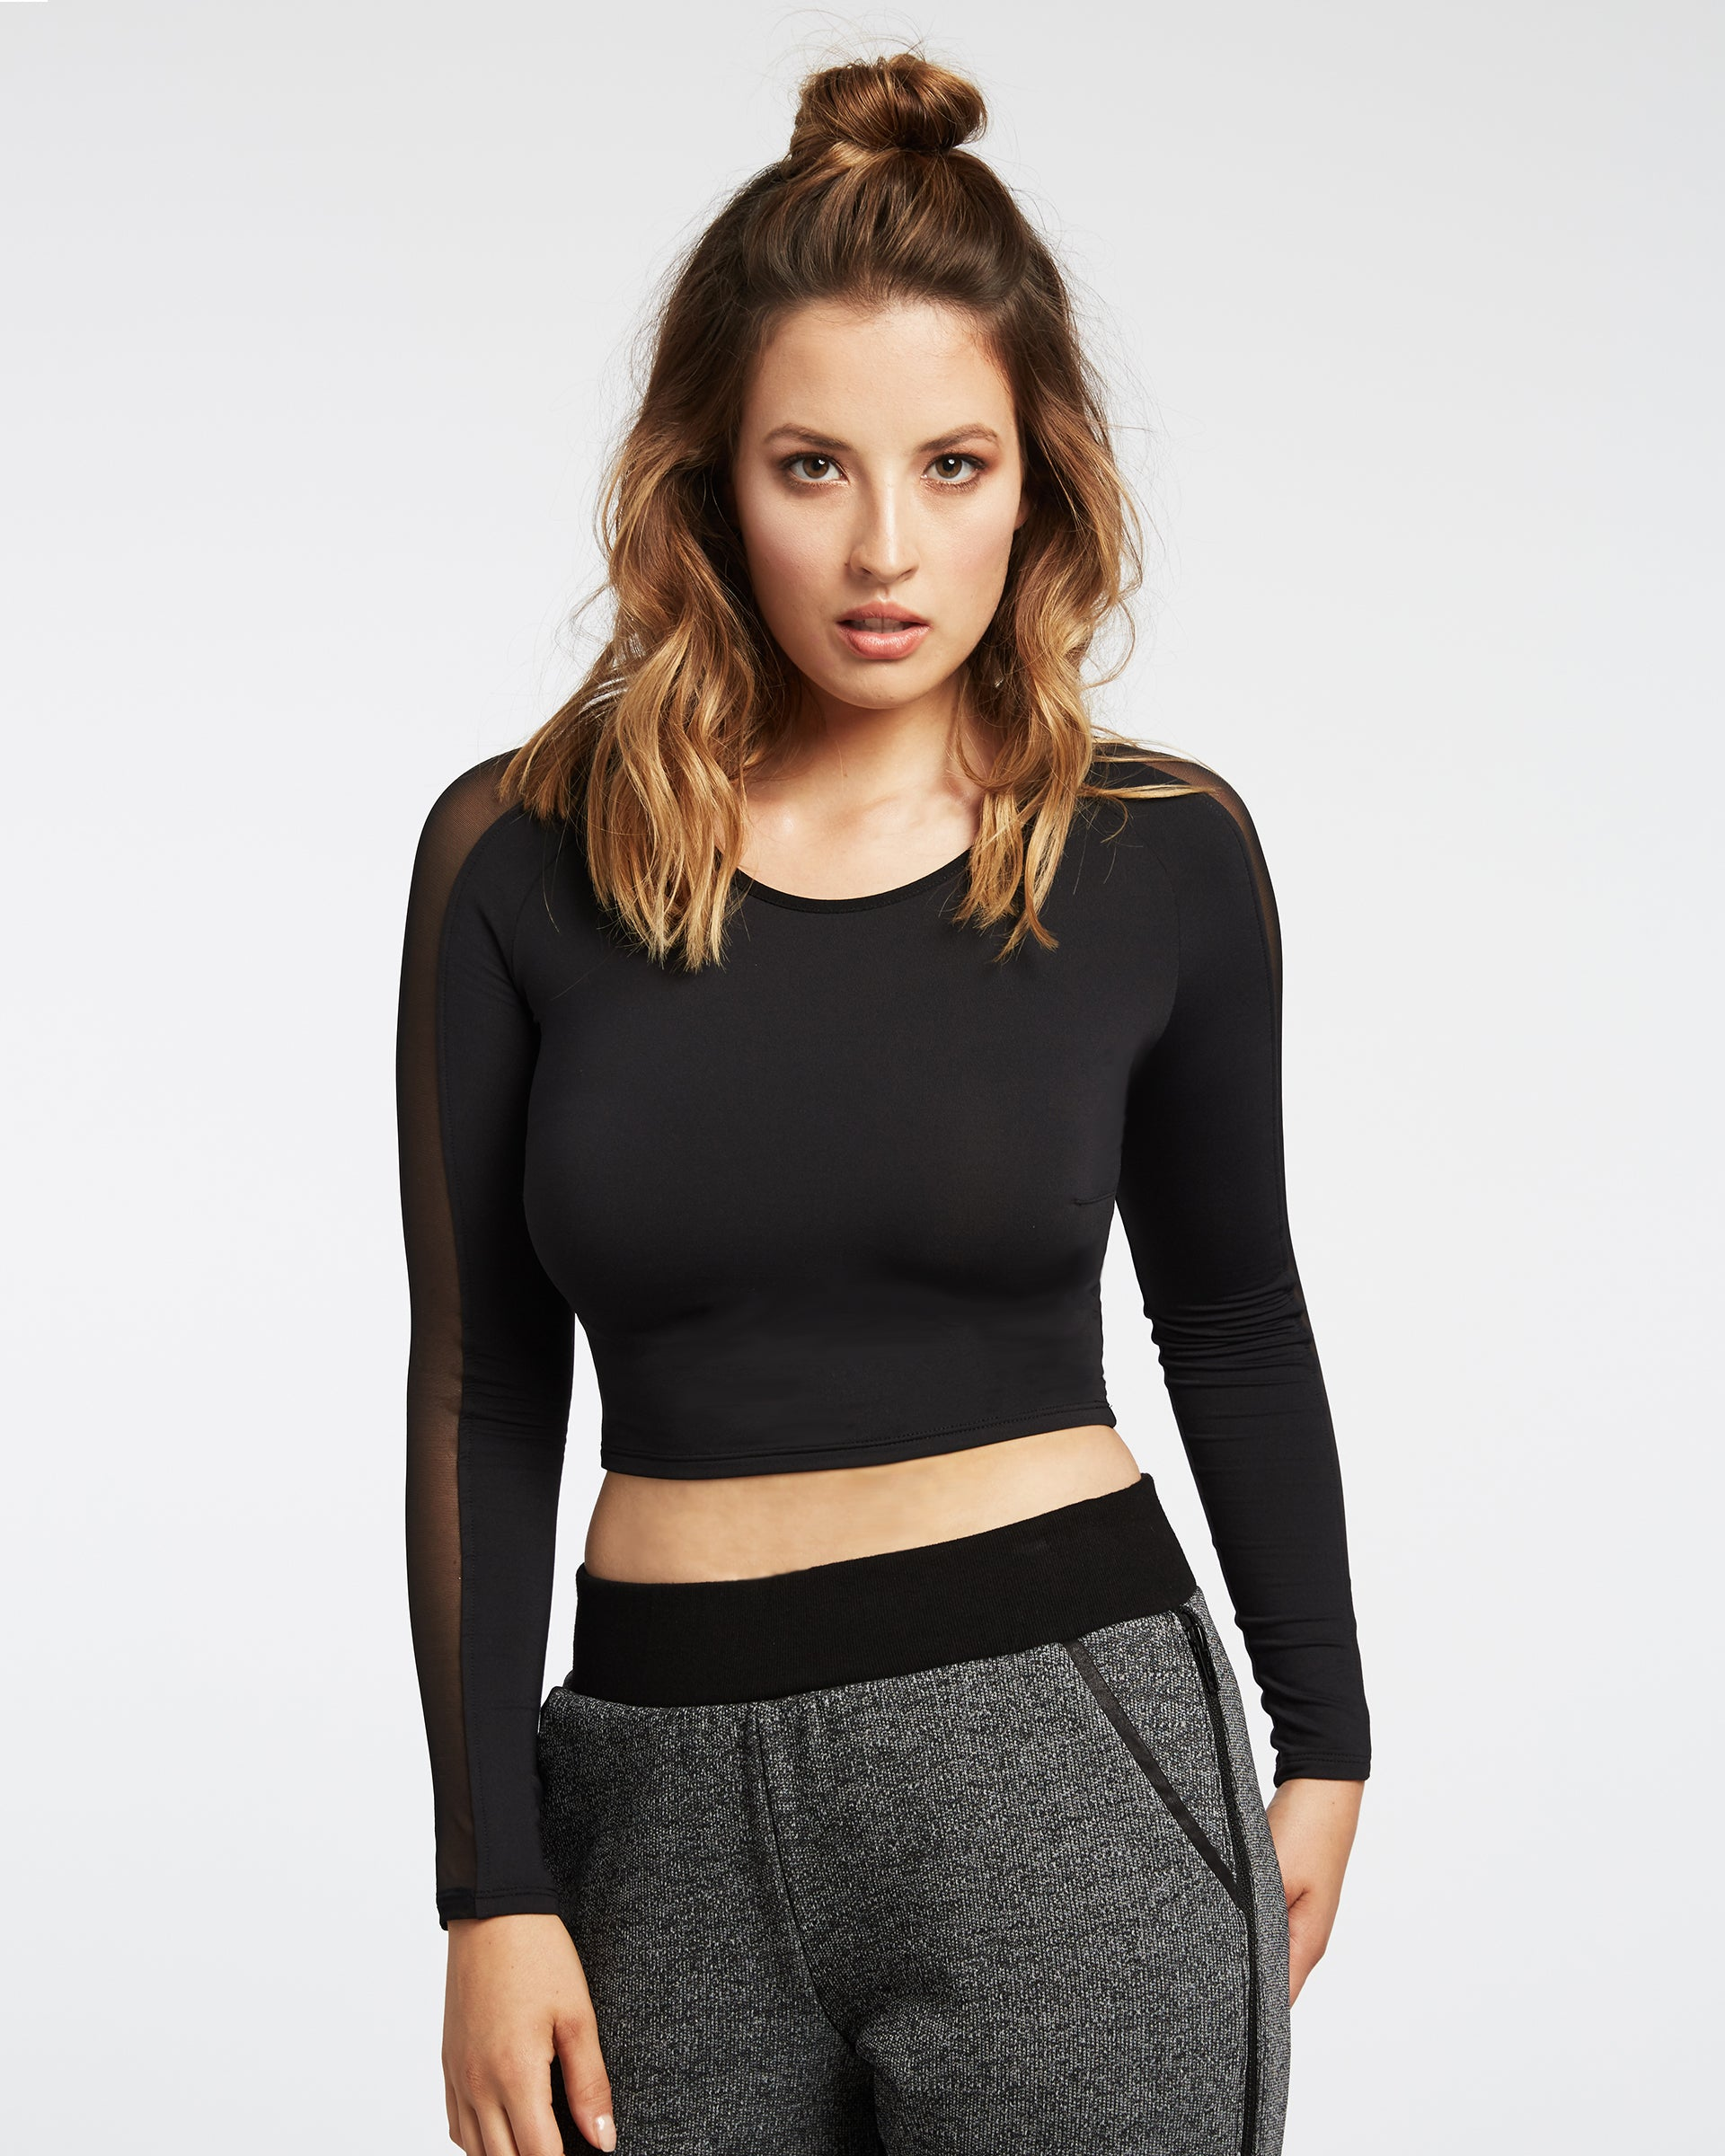 bolt-crop-top-black